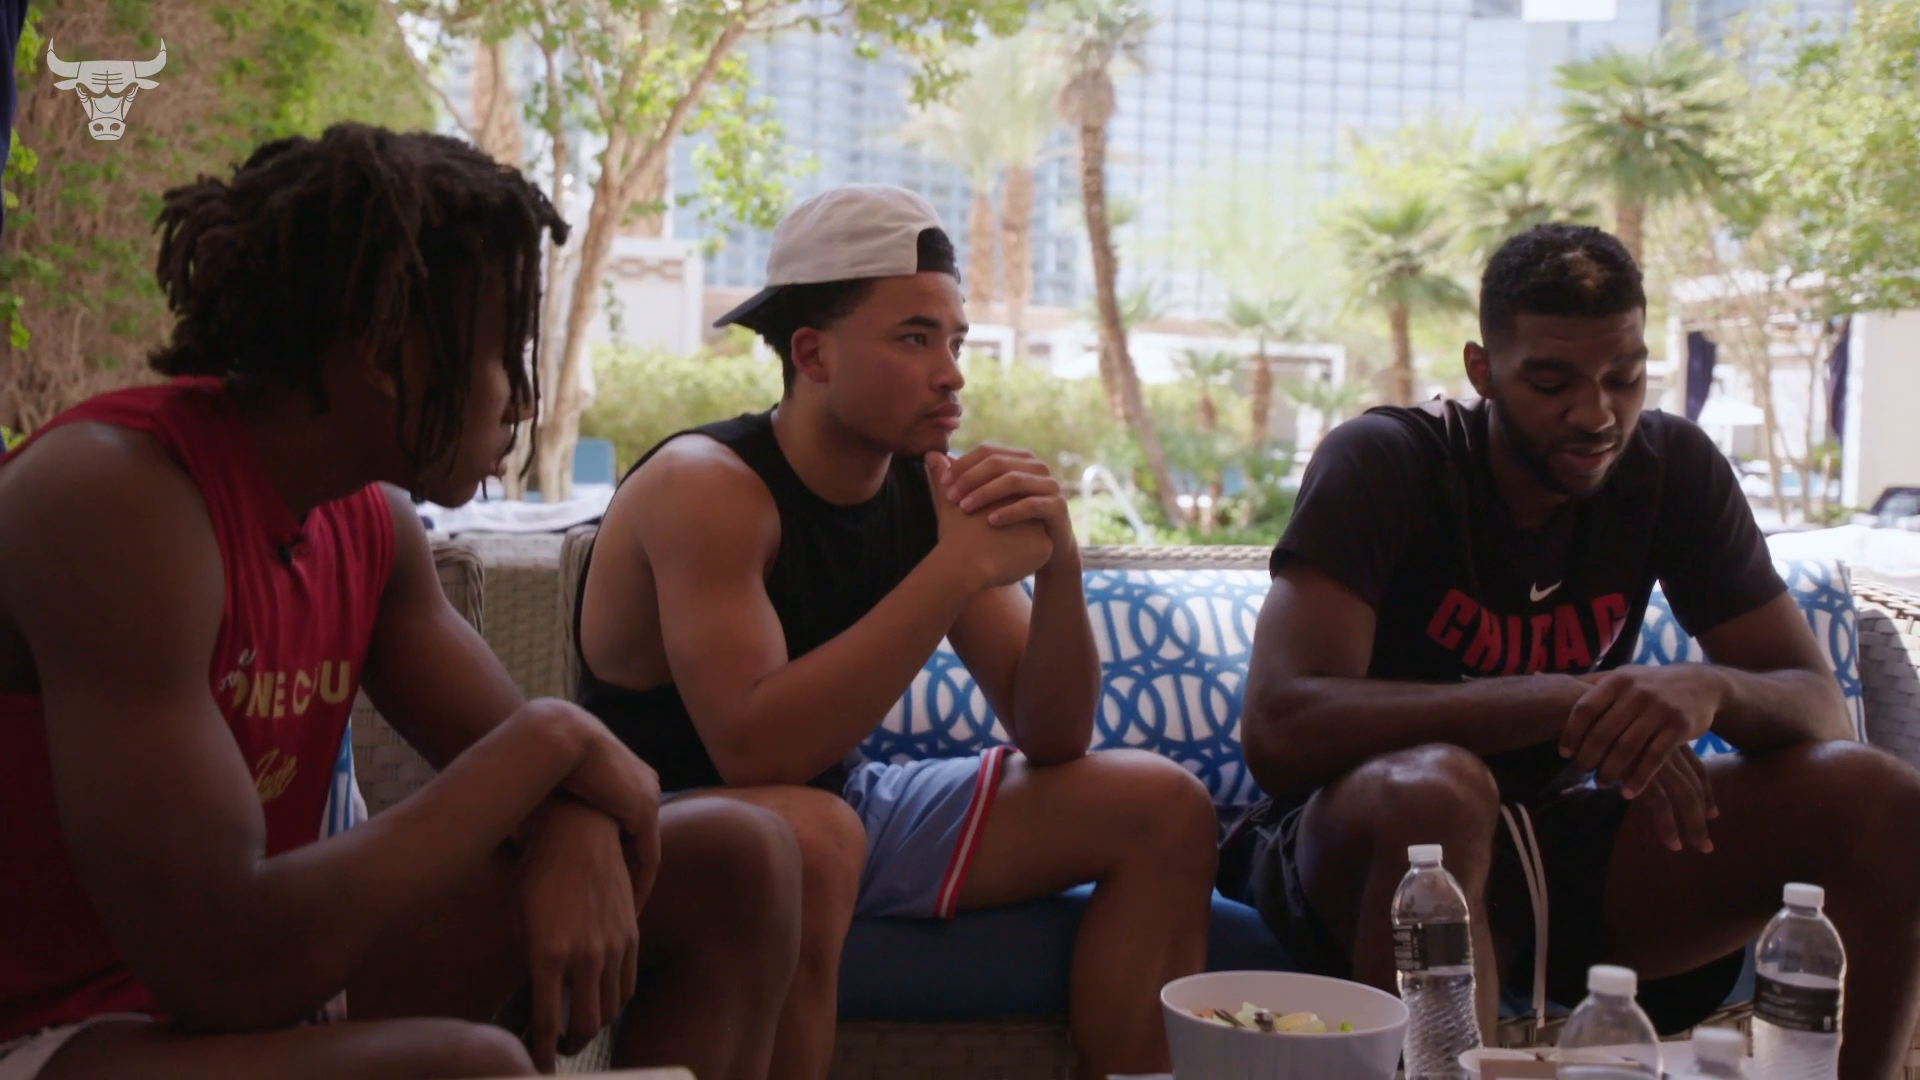 Summer Discussions - Williams & Dotson discuss life in the NBA with Bulls Rookies